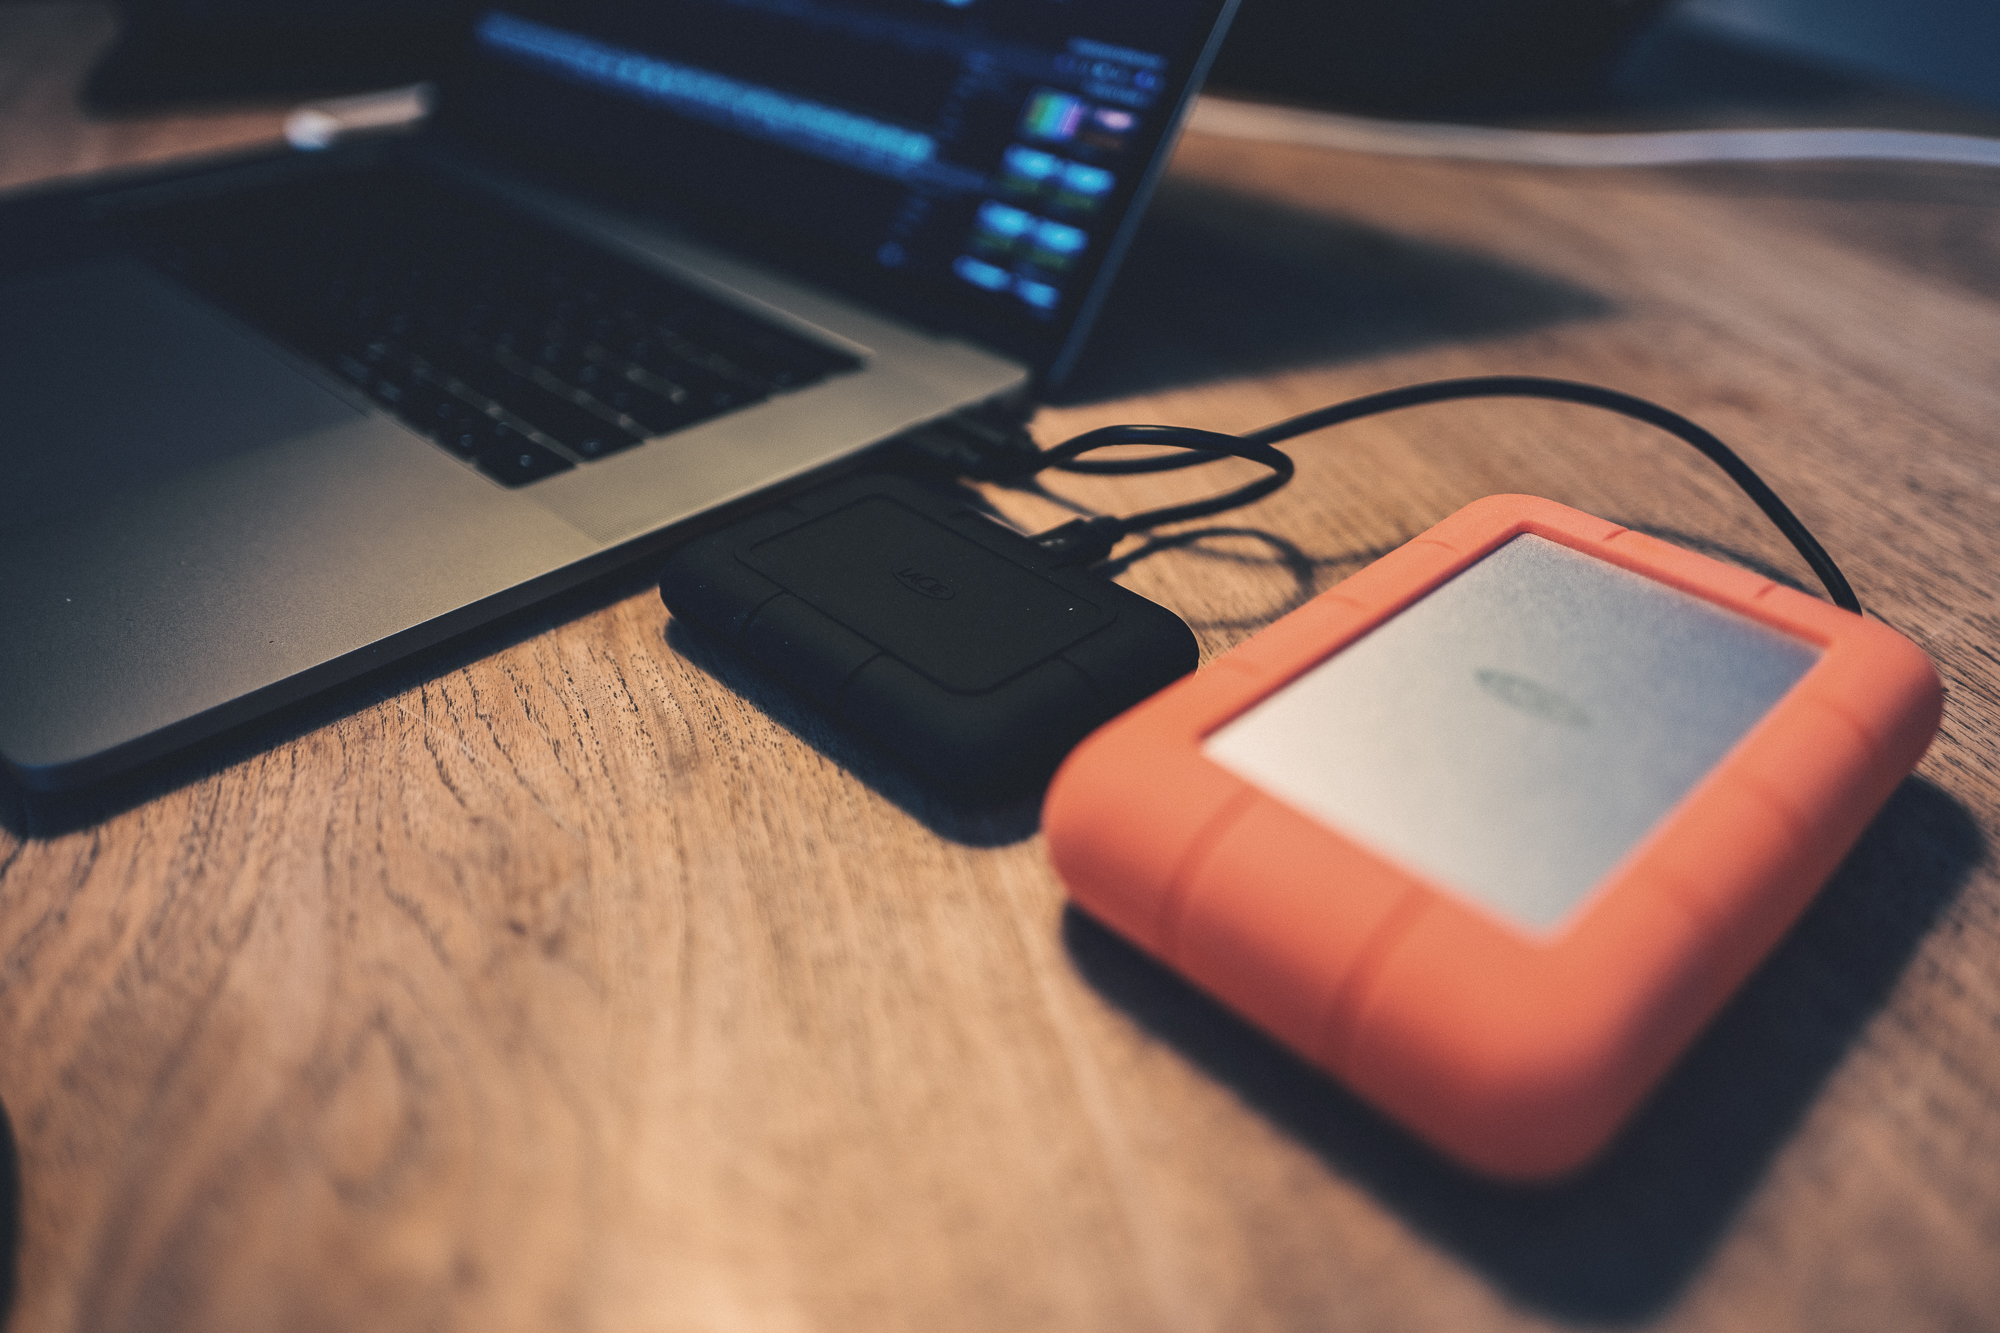 LaCie Rugged SSD Pro Test